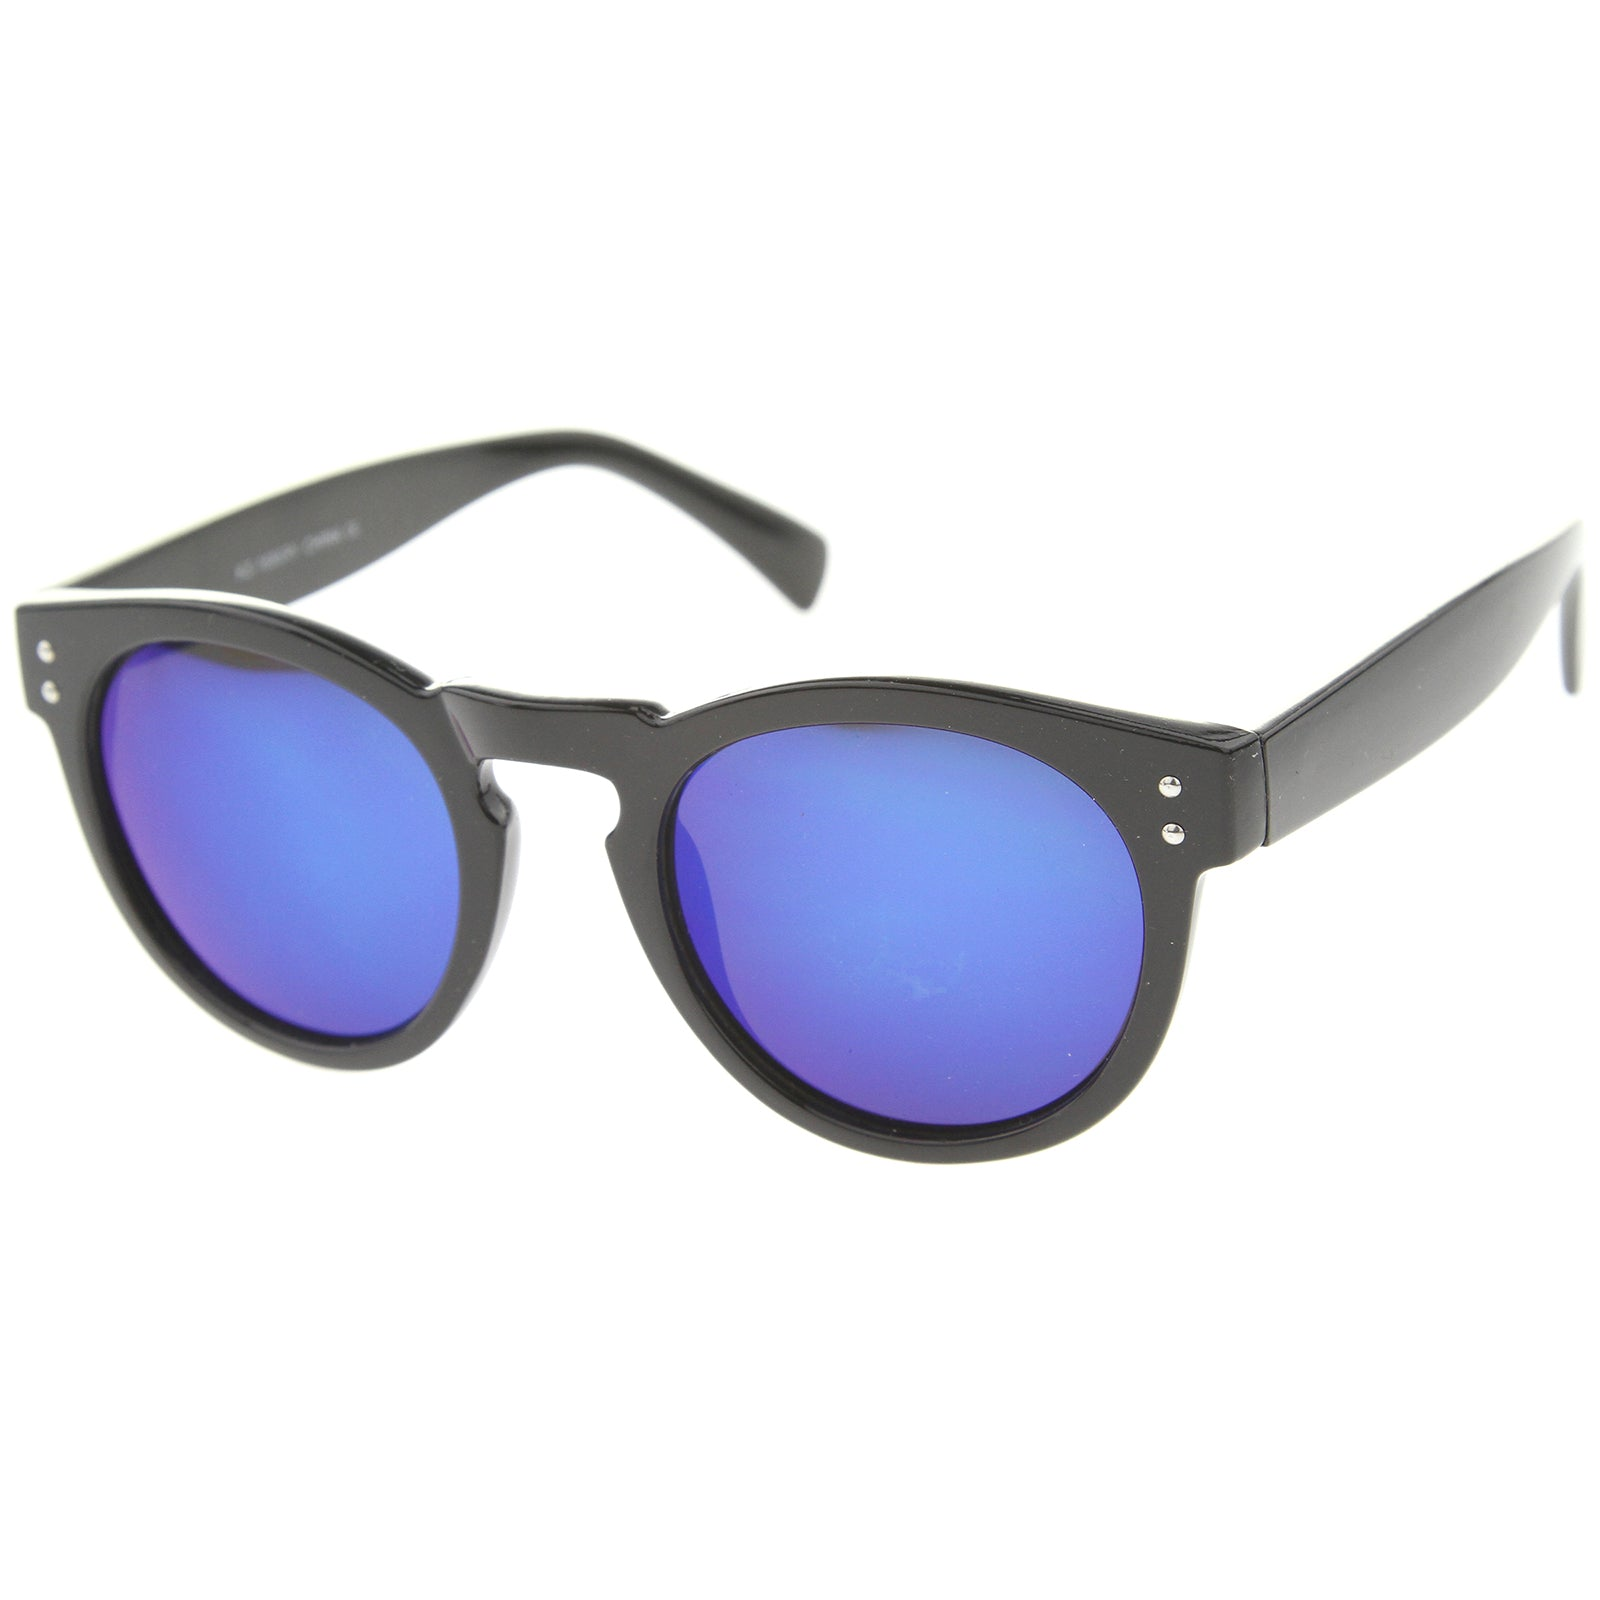 Womens Horn Rimmed Sunglasses With UV400 Protected Mirrored Lens - sunglass.la - 14